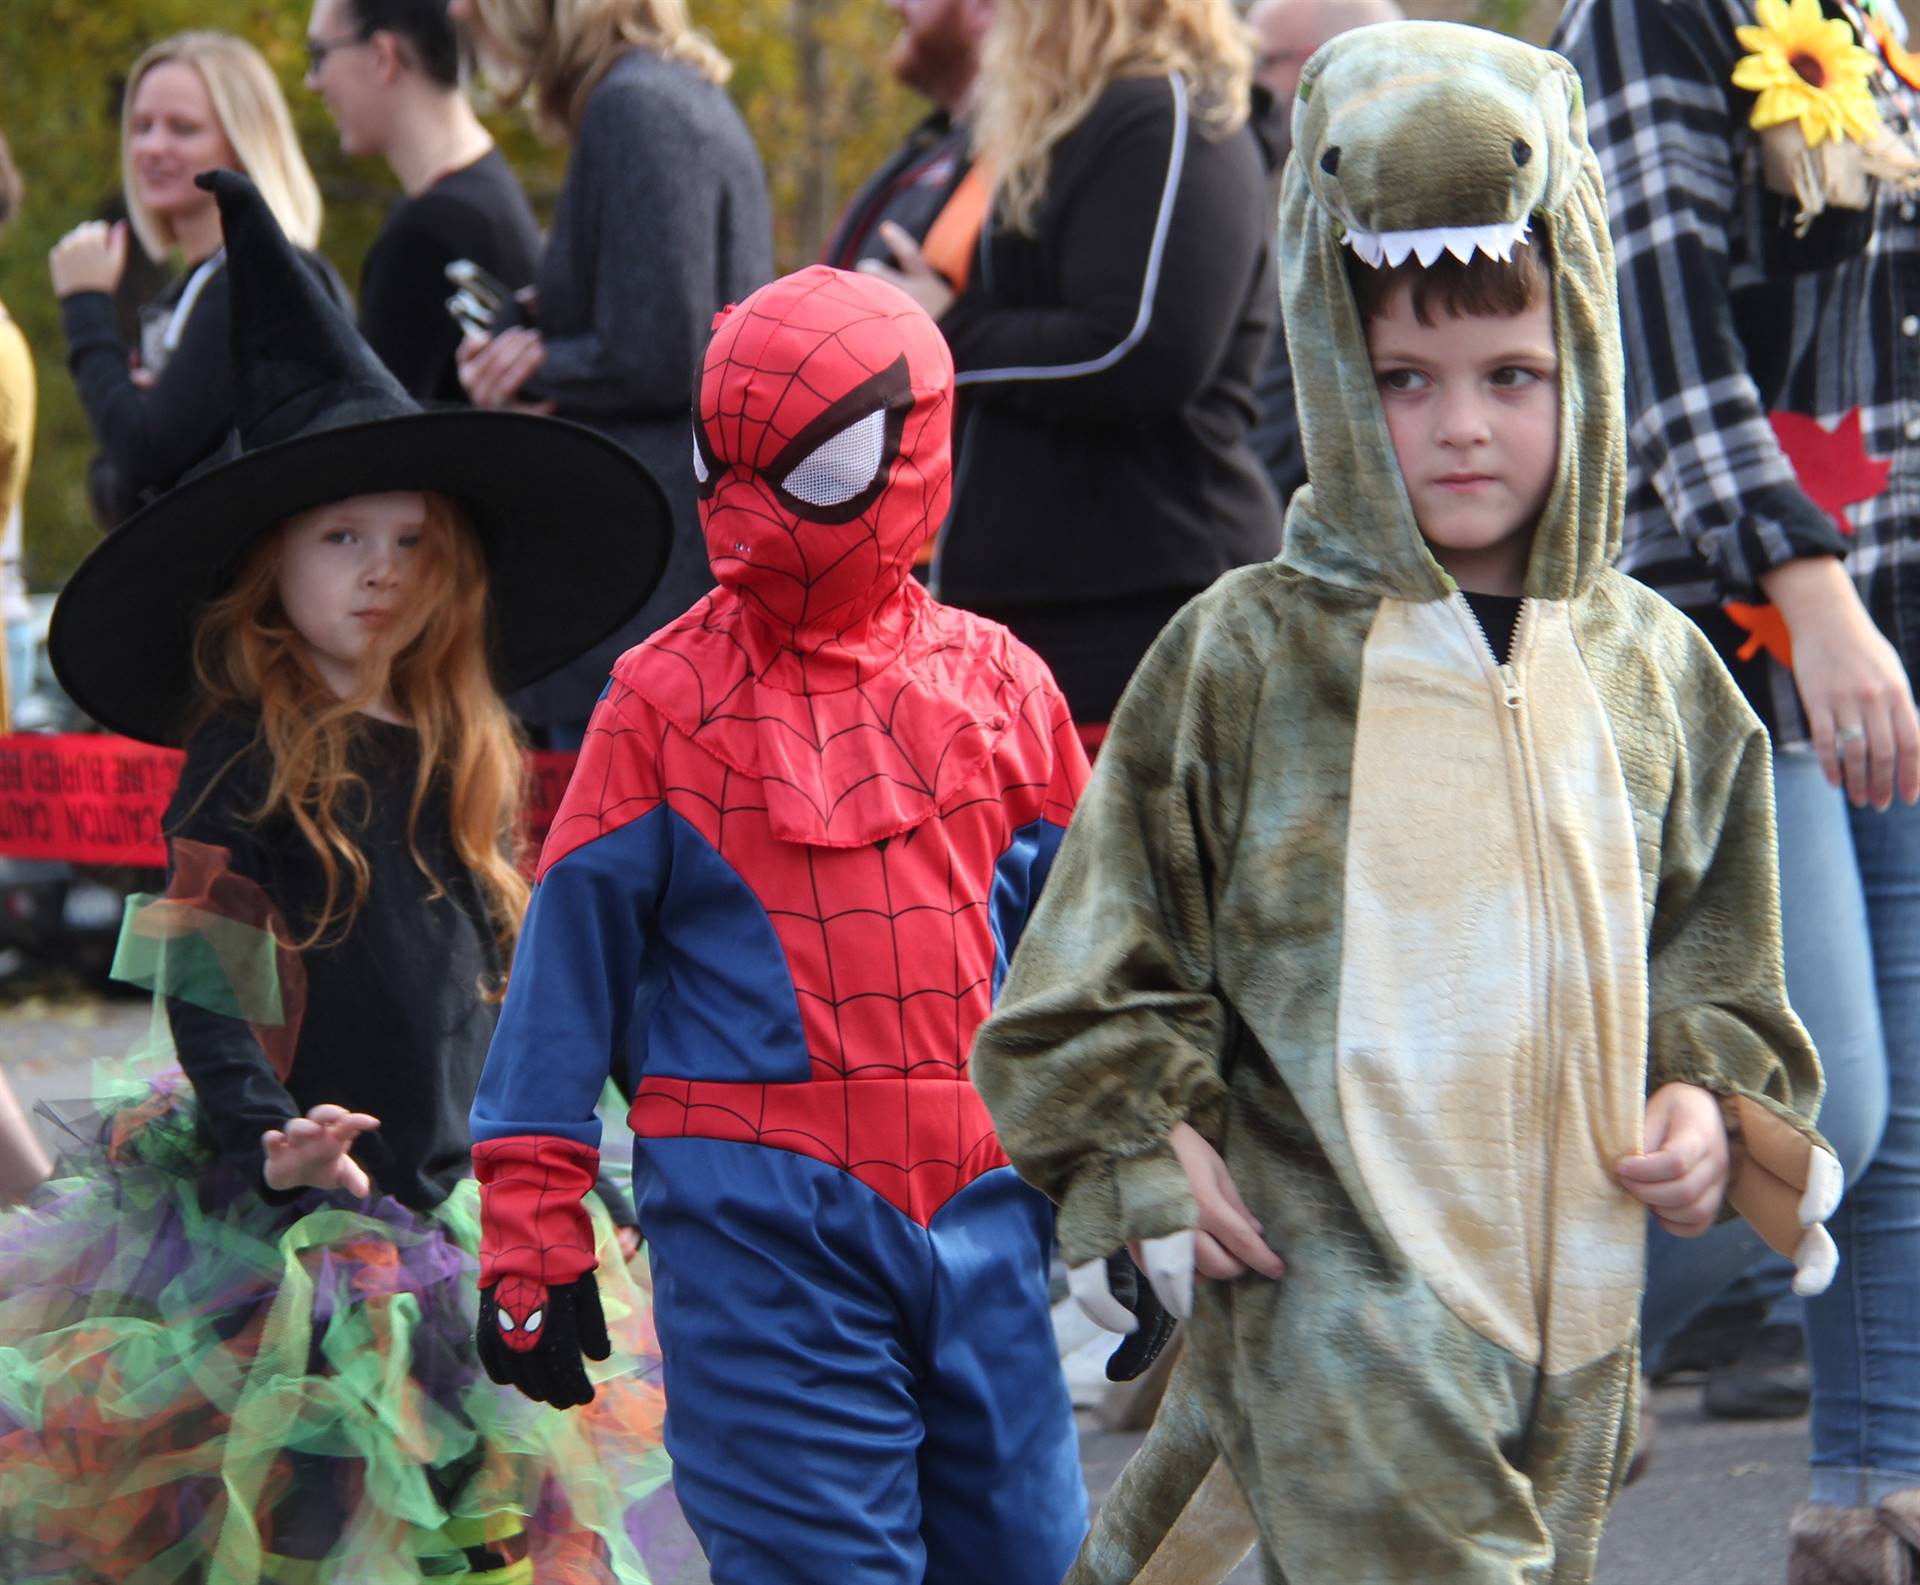 three students wearing costumes